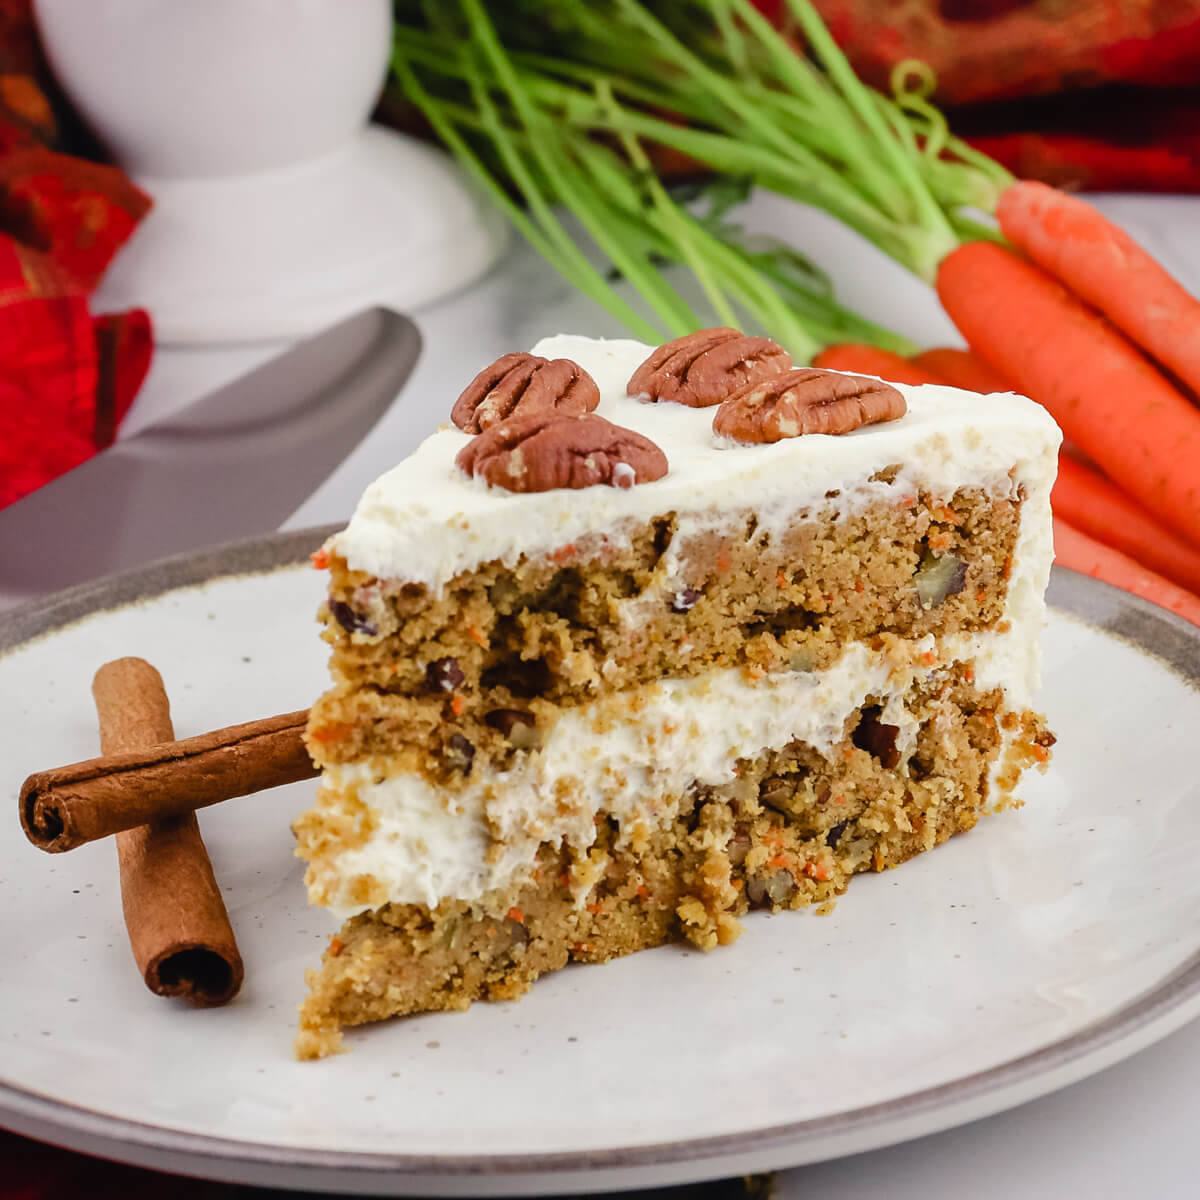 Piece of keto carrot cake on a plate